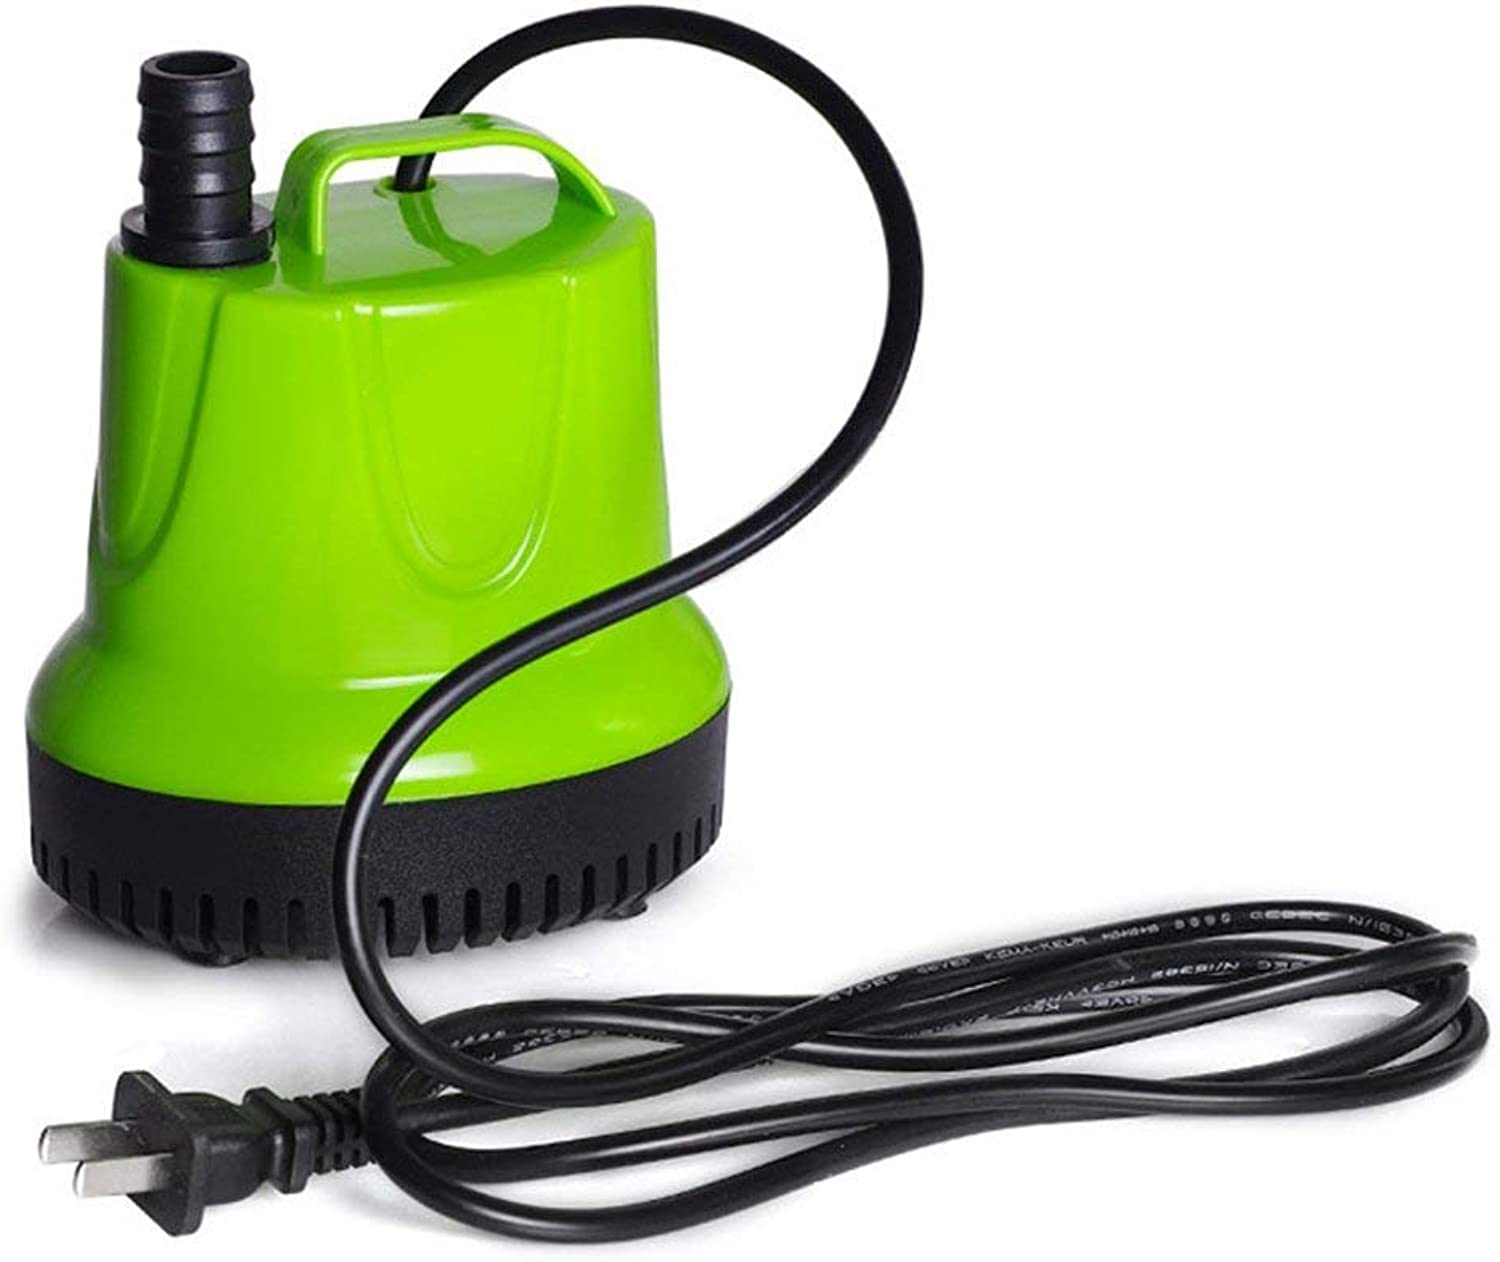 Aquarium Submersible Pump, 25W100W AntiDrying Silent Small Filter, Pumping, Sucking, Sewage, Fish Tank Diving Cycle, CNC Cooling Pump,1200L H [Energy Class A],3500L